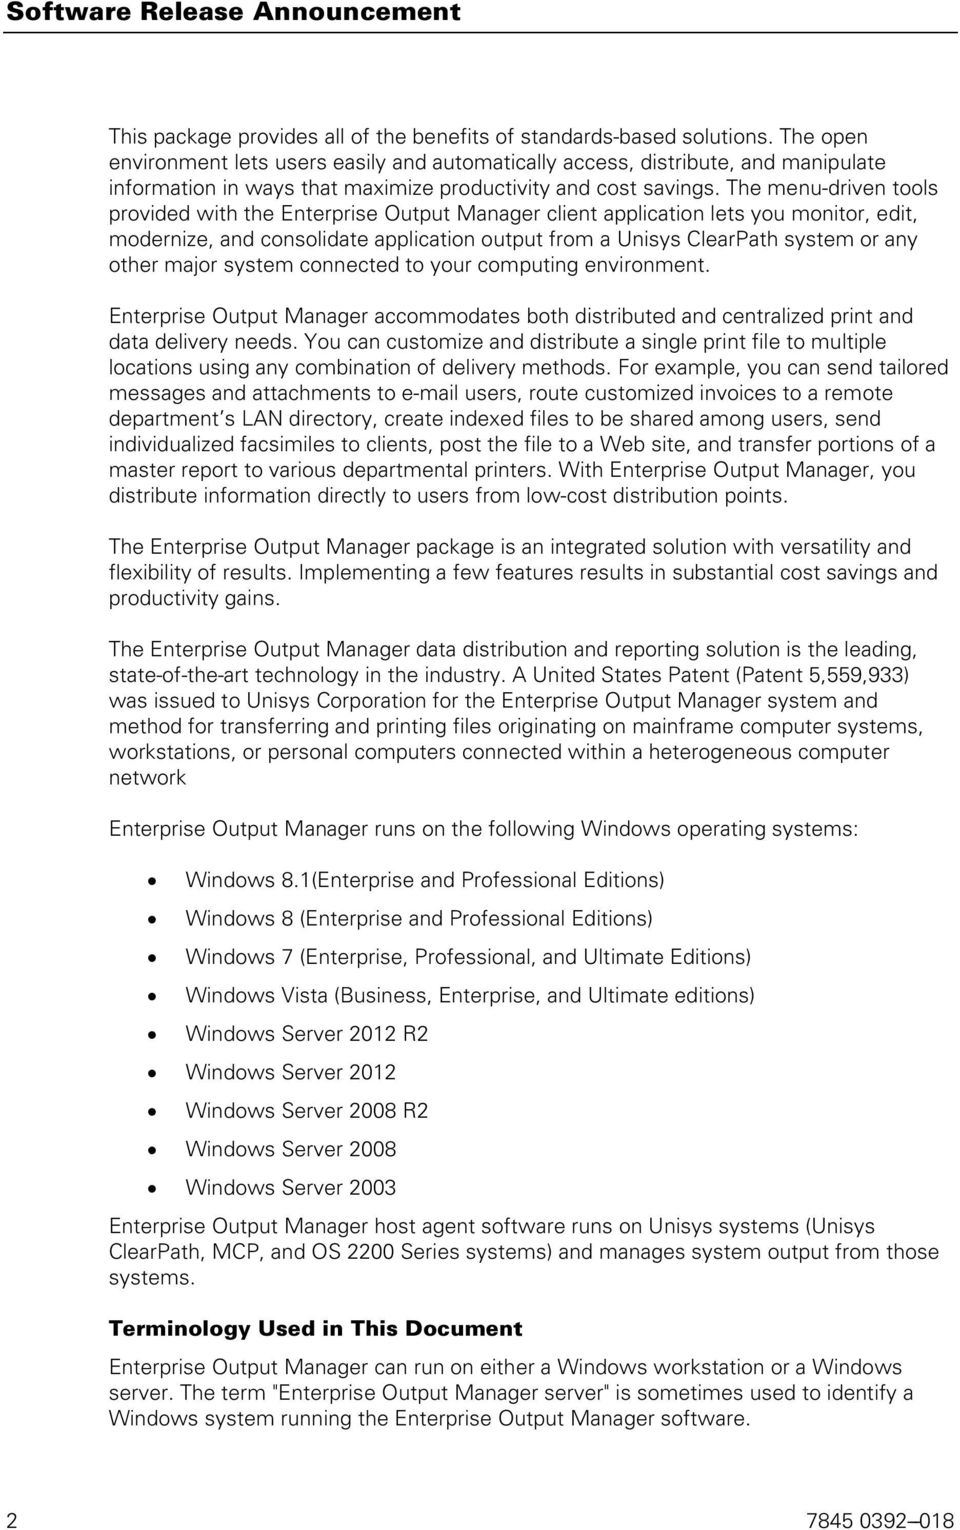 The menu-driven tools provided with the Enterprise Output Manager client application lets you monitor, edit, modernize, and consolidate application output from a Unisys ClearPath system or any other